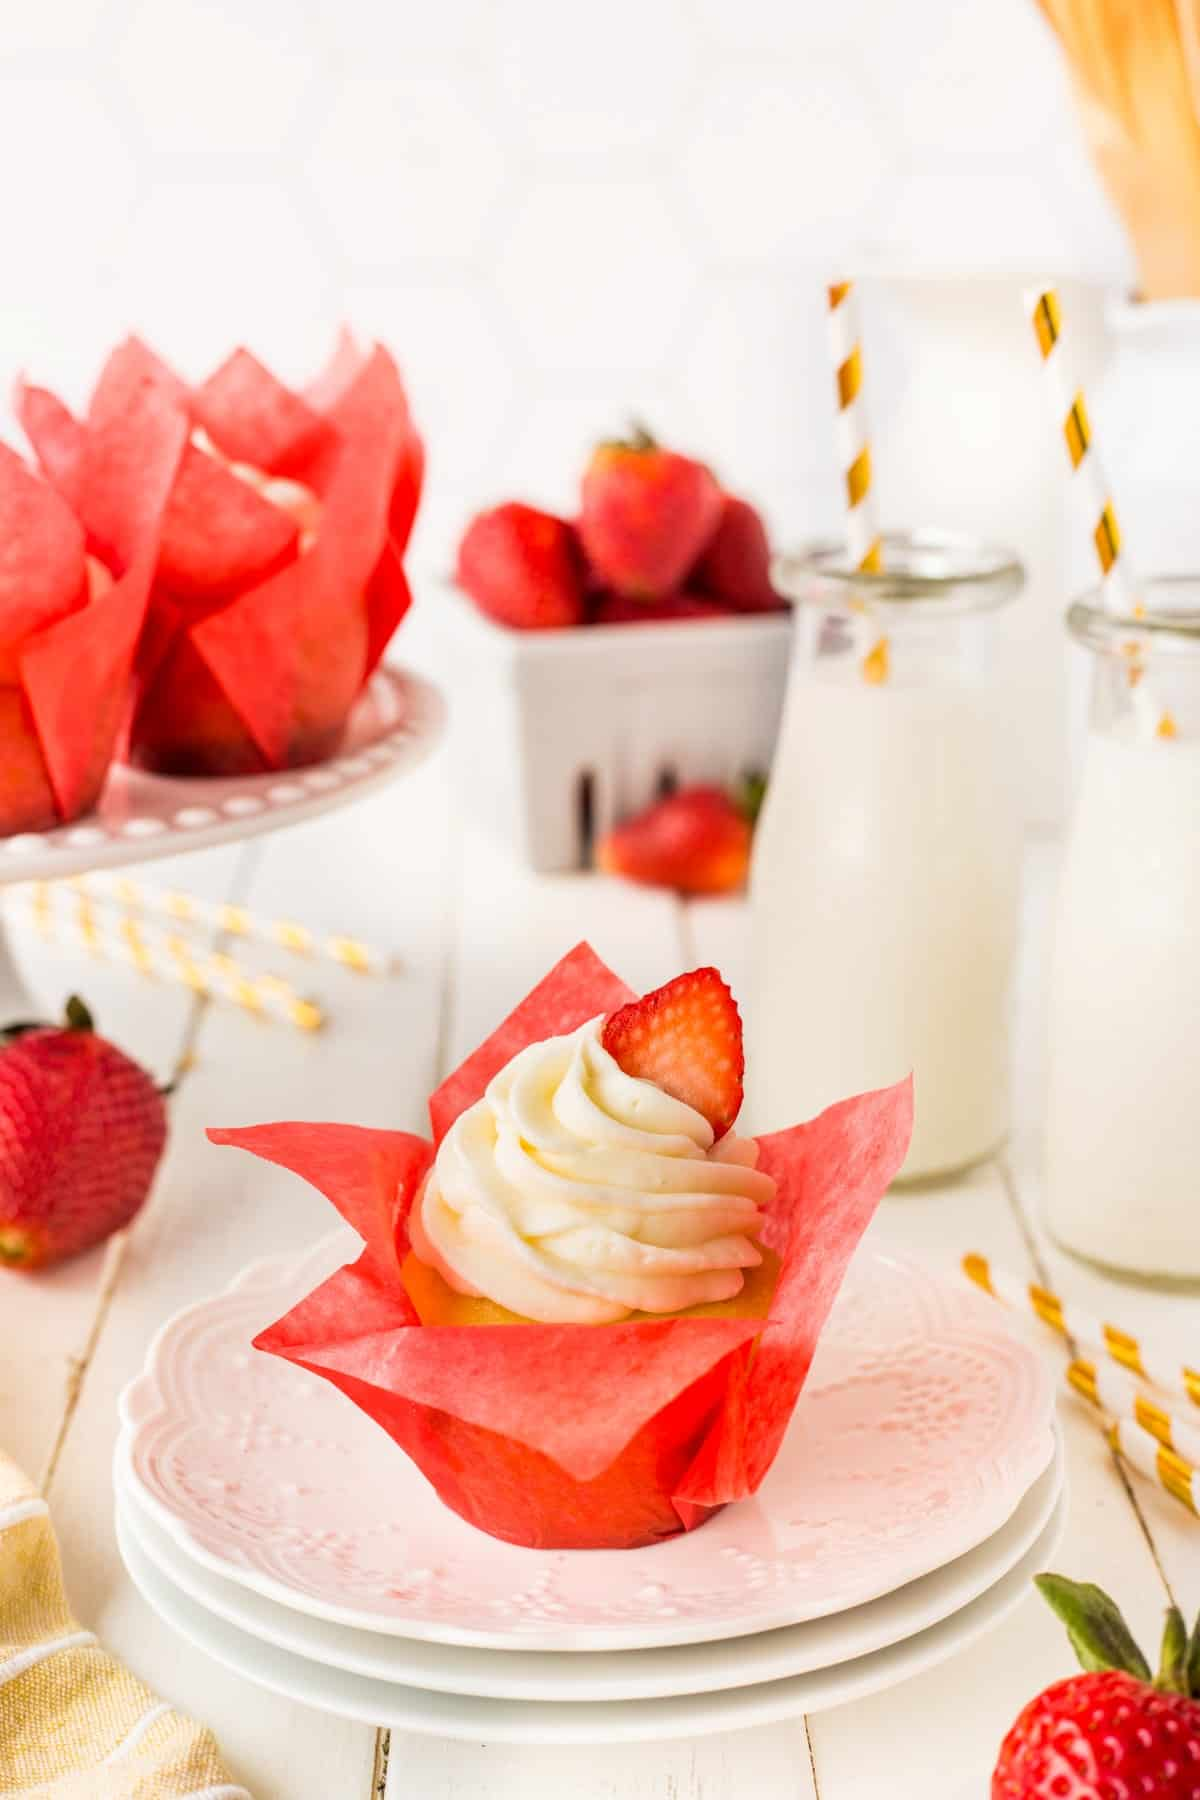 A cupcake on a plate with milk bottles in the background, strawberries and more cupcakes.